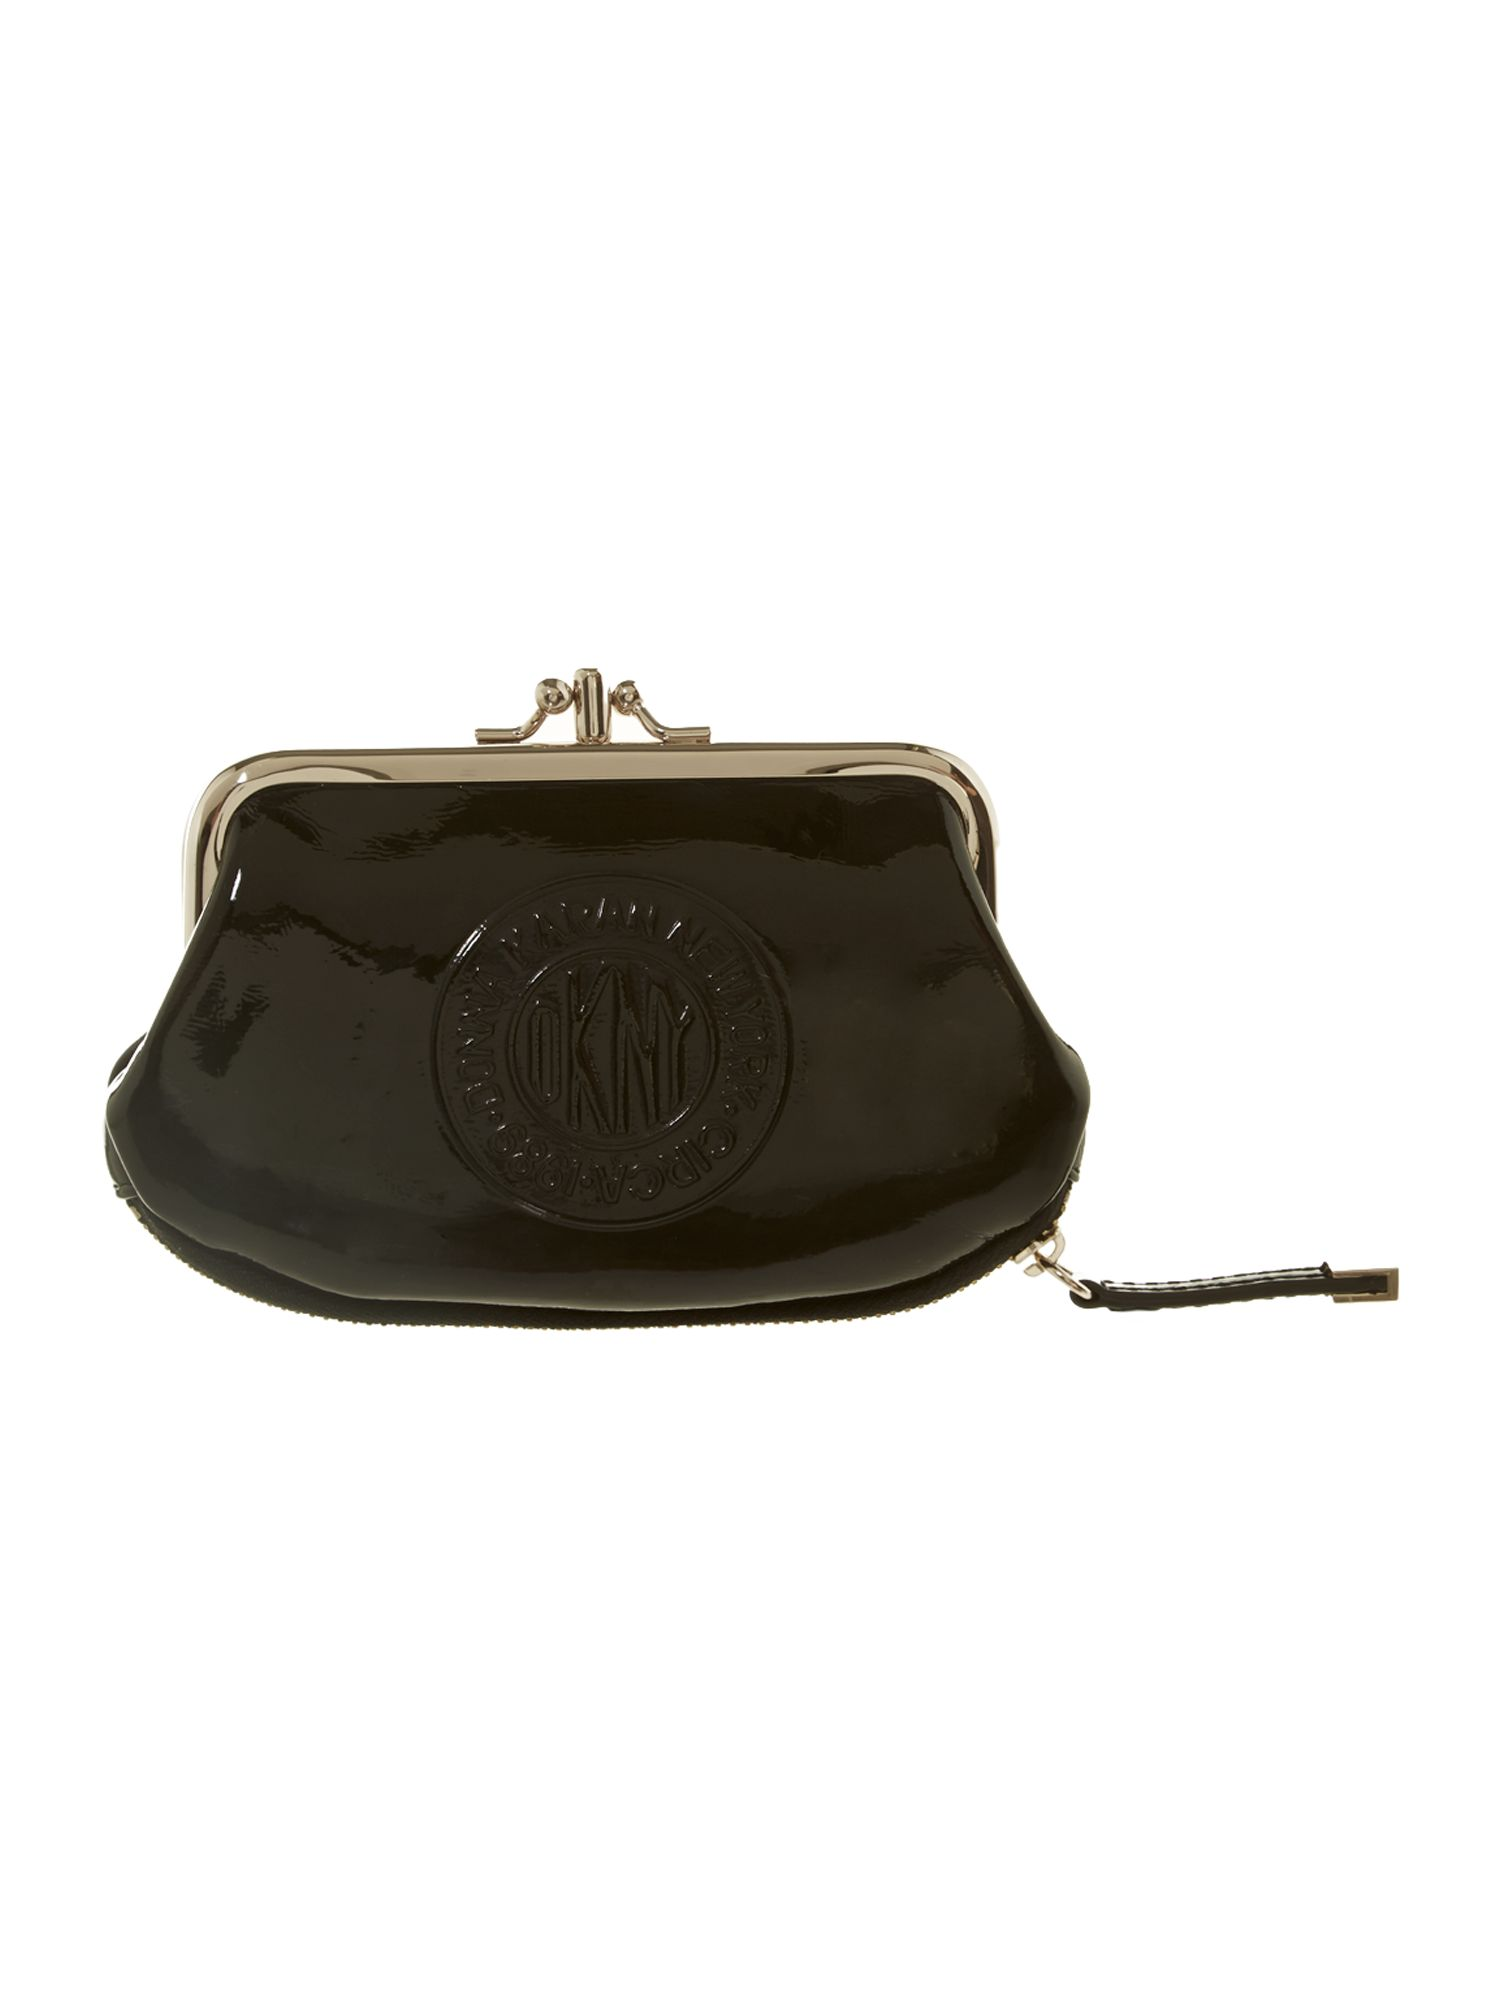 Patent logo black small coin purse